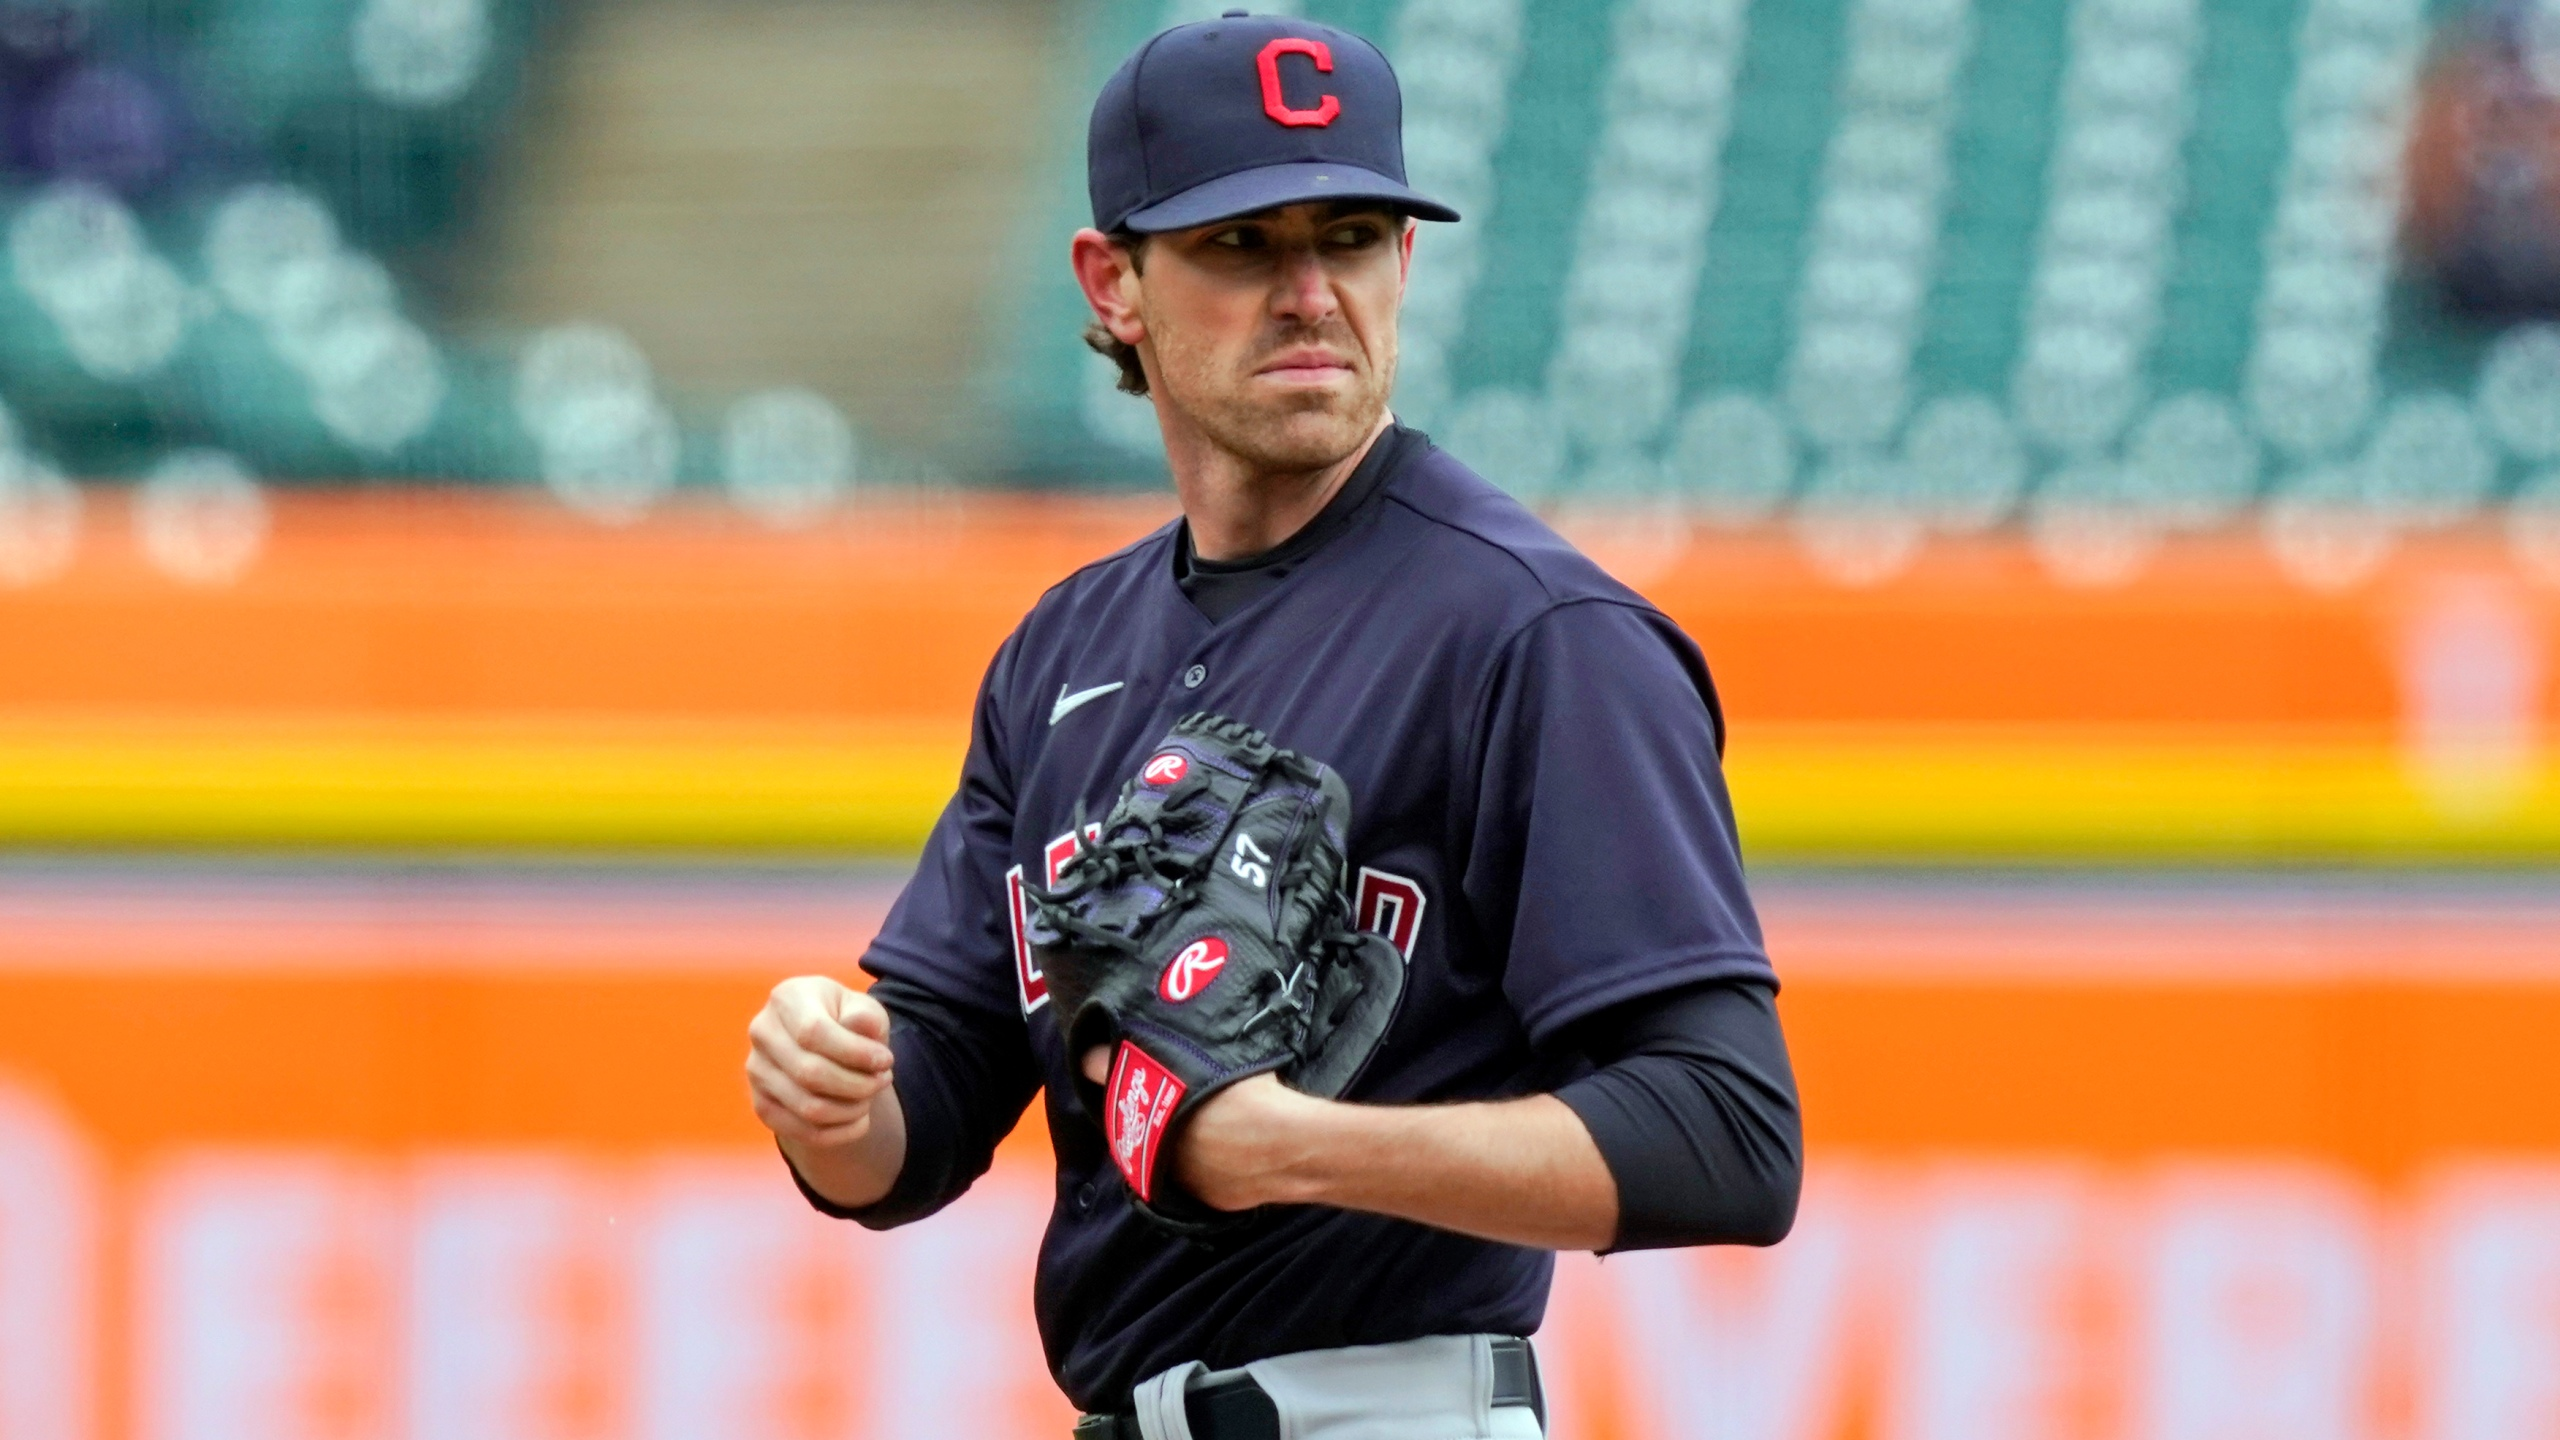 FILE - In this April 1, 2021, file photo, Cleveland Indians starting pitcher Shane Bieber looks towards first during the third inning of a baseball game against the Detroit Tigers, in Detroit. Cleveland's ace and the reigning AL Cy Young winner, who has been out with shoulder inflammation, was encouraged after throwing in the outfield Friday, Aug. 6, 2021, and said he wants to get back on the mound this season. (AP Photo/Carlos Osorio, File)